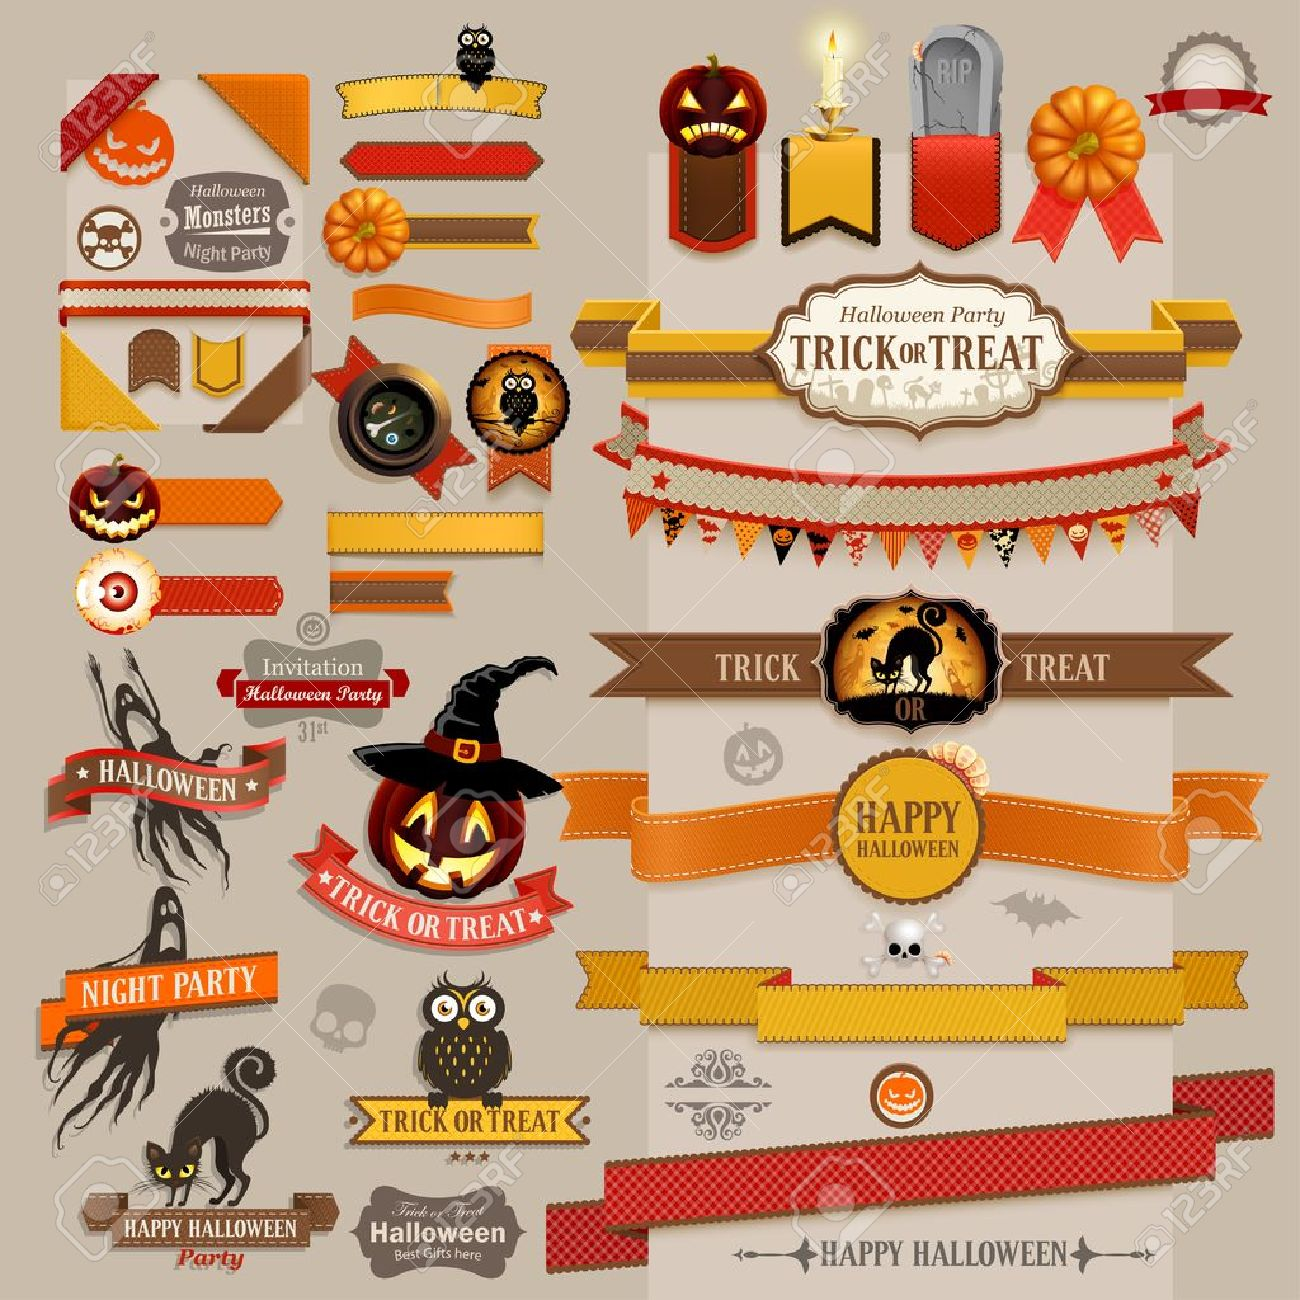 How to decorate scrapbook with ribbon